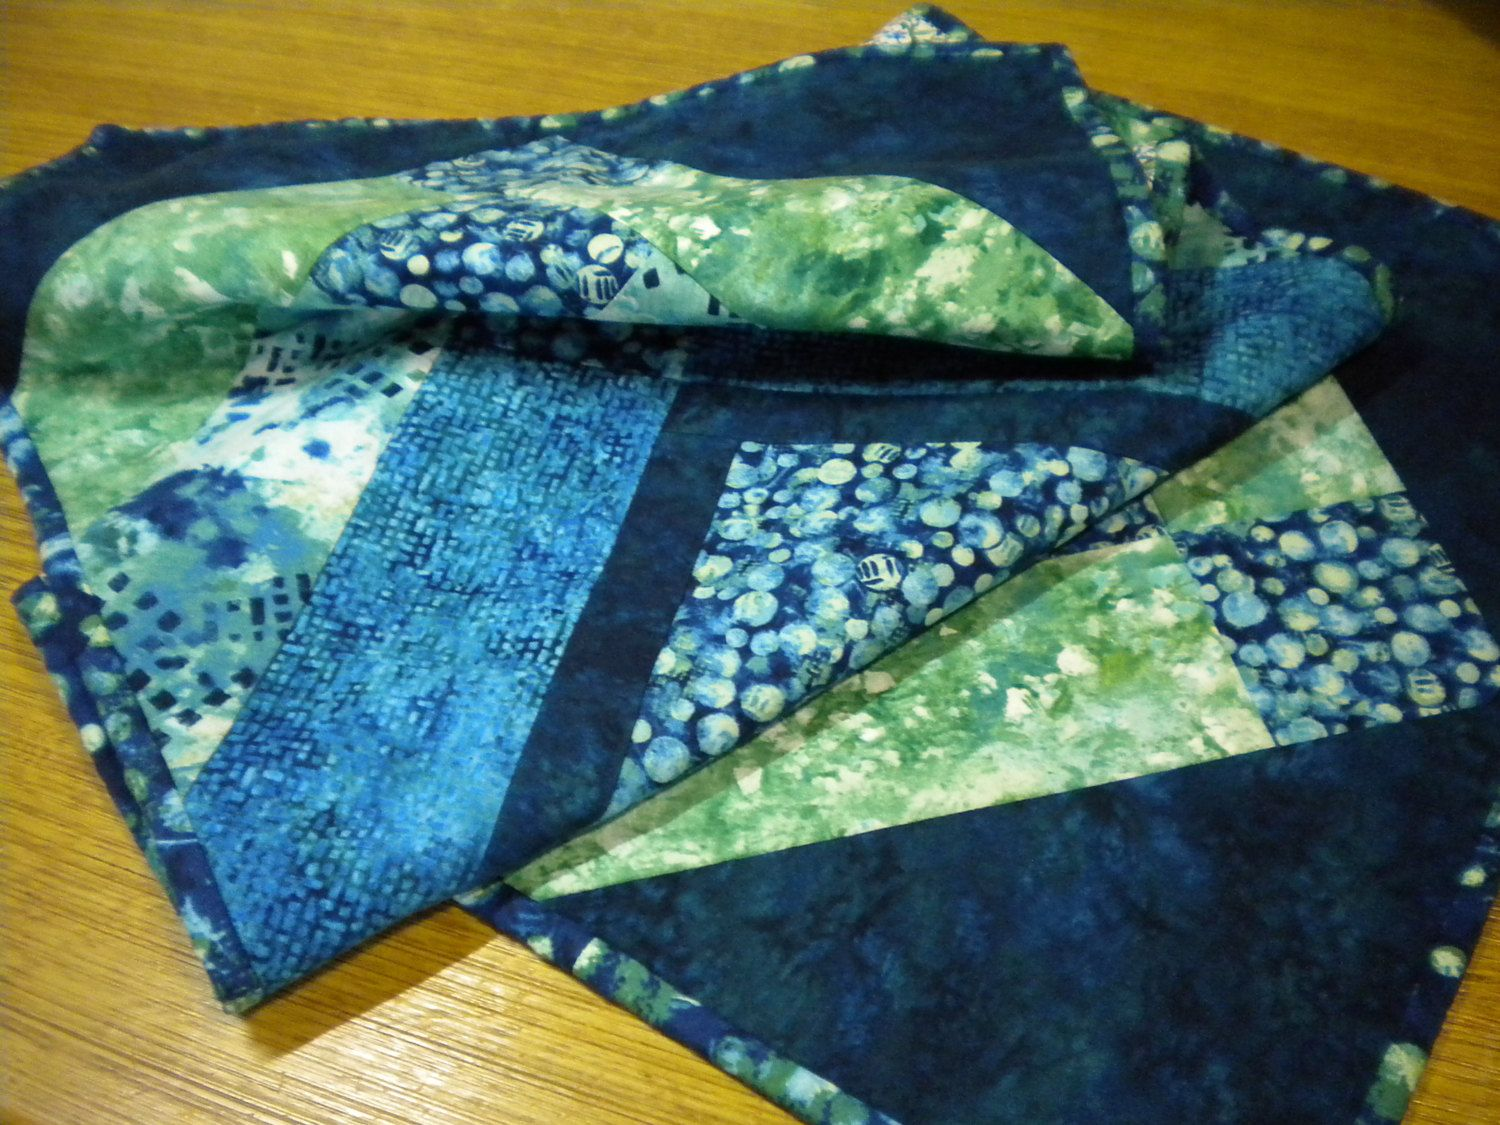 Blue and Green Quilted Table Runner, beach cottage table decor, sea glass quilted topper, green beach glass decor, quilted table mat blue by SewEverAfter on Etsy